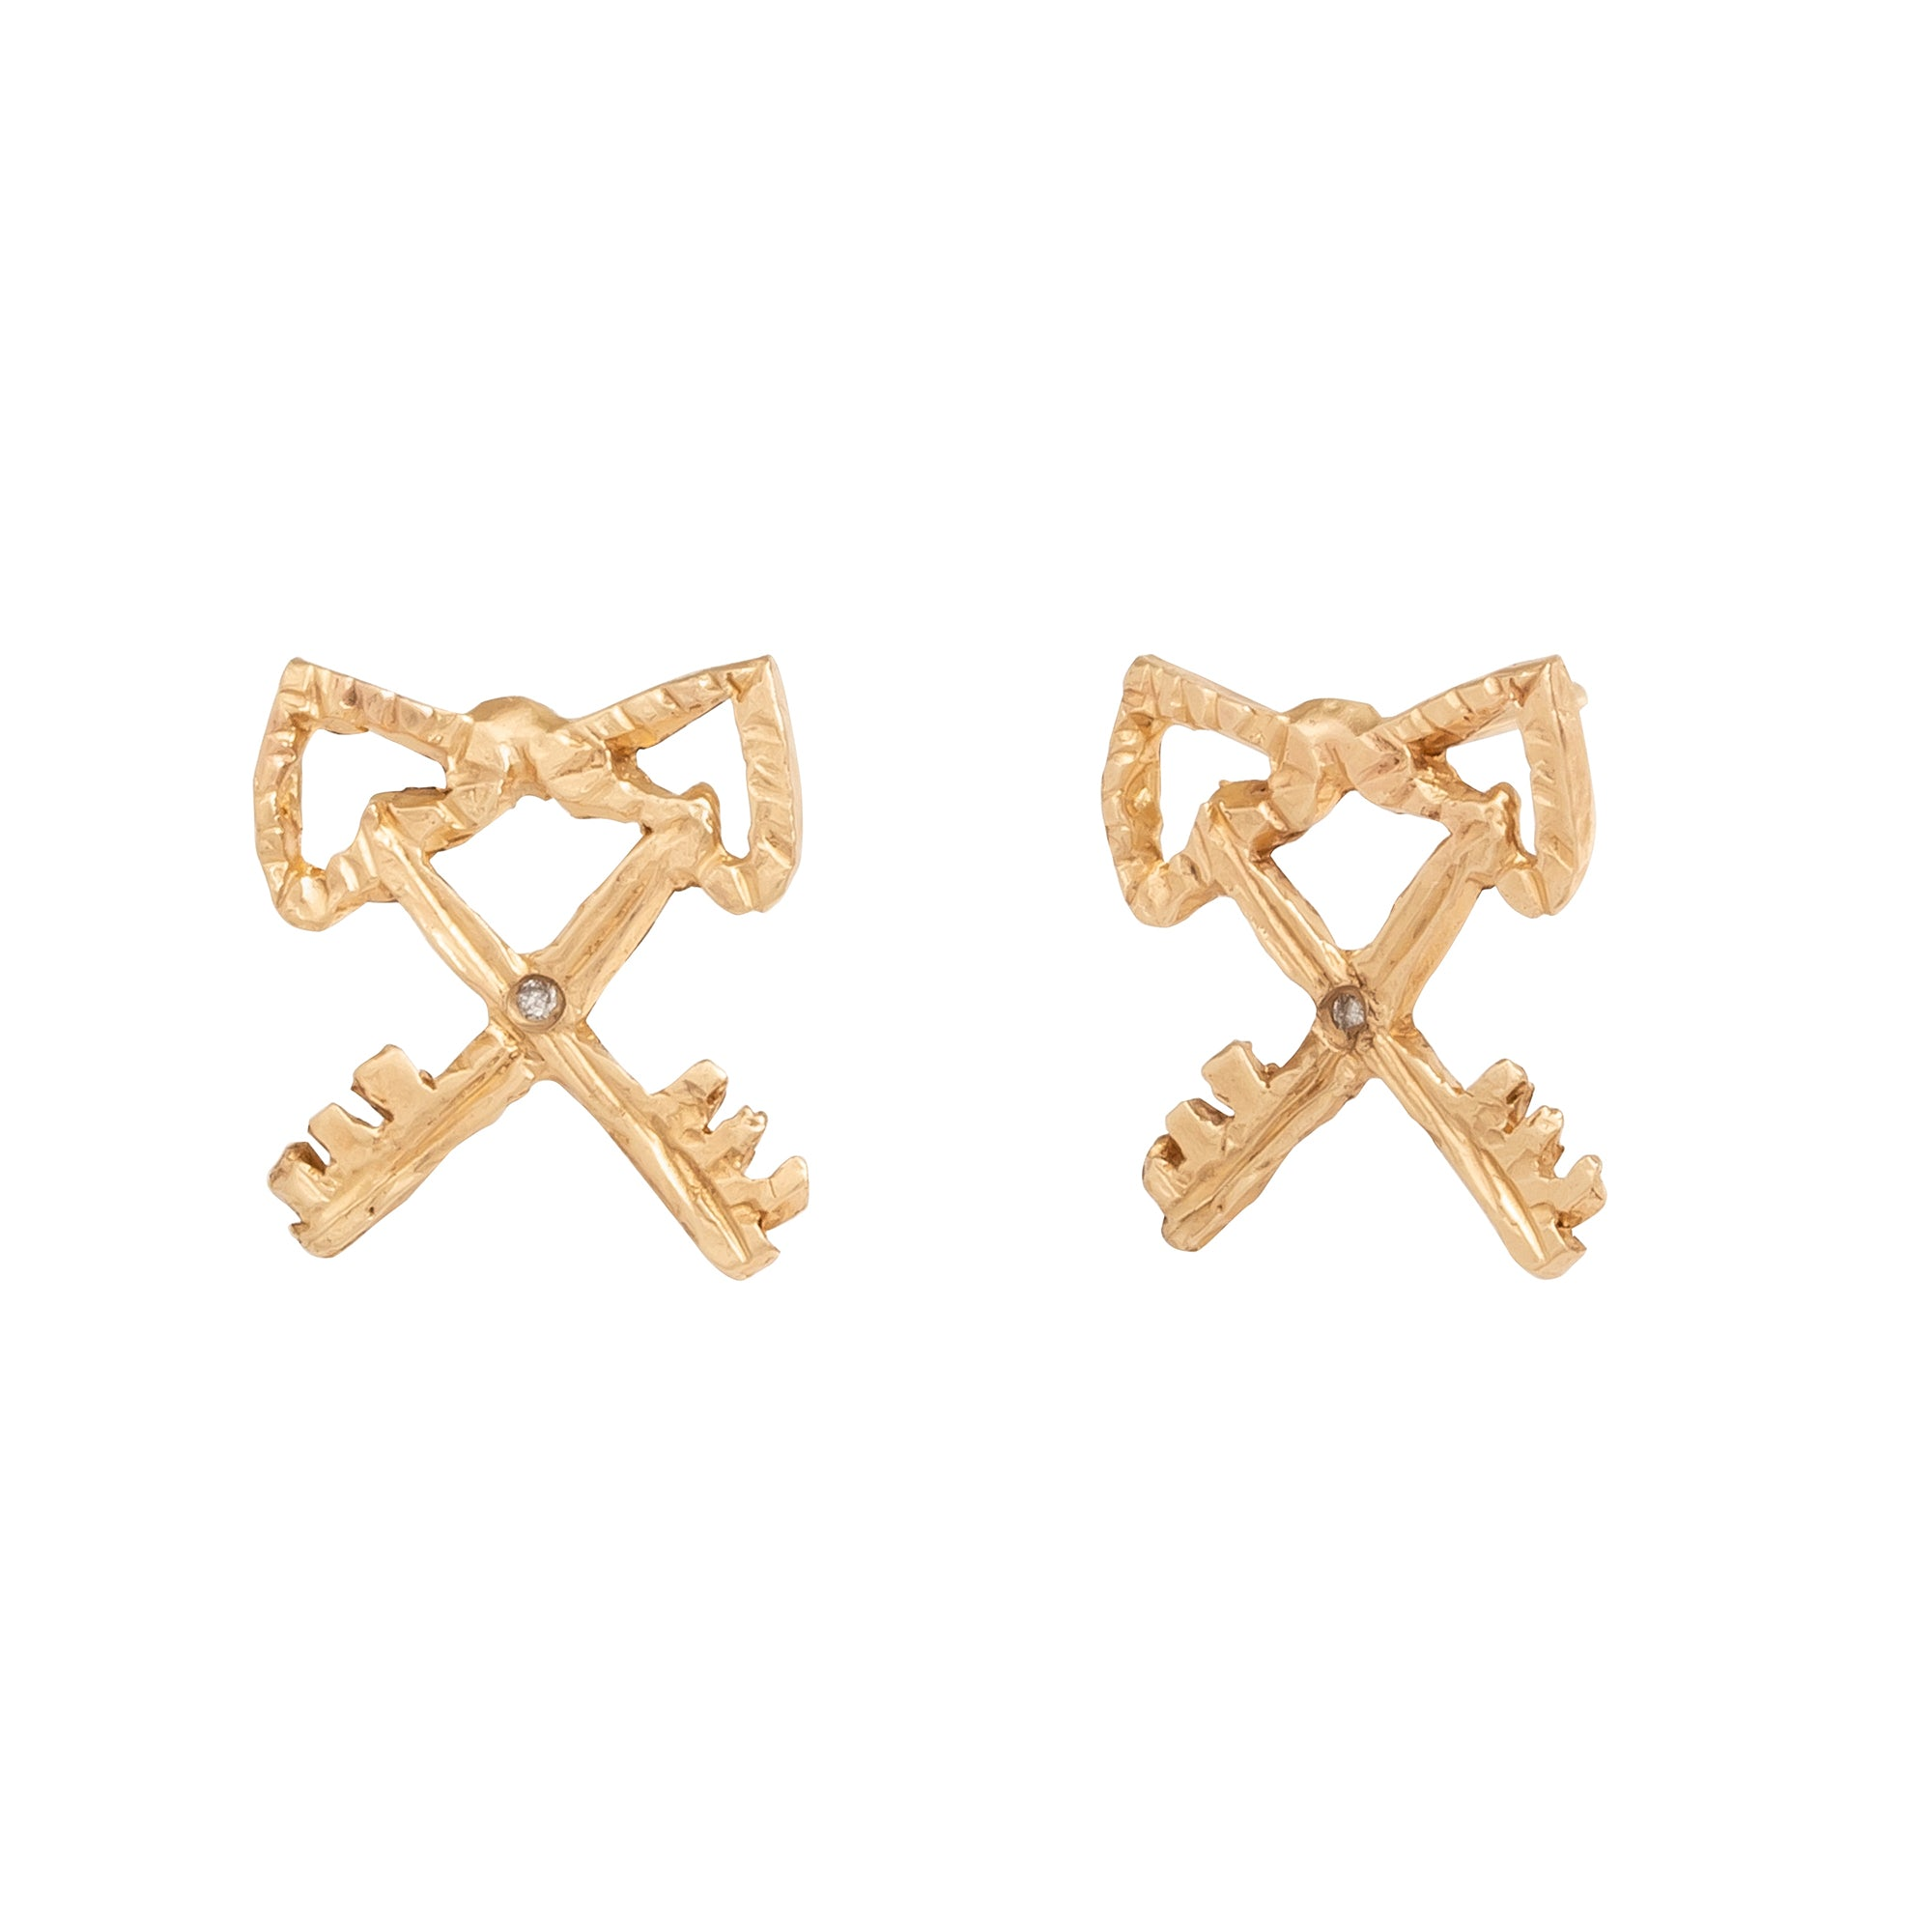 Xiao Wang IceCreamCandy - Double Heart Key Earrings - Earrings - Broken English Jewelry